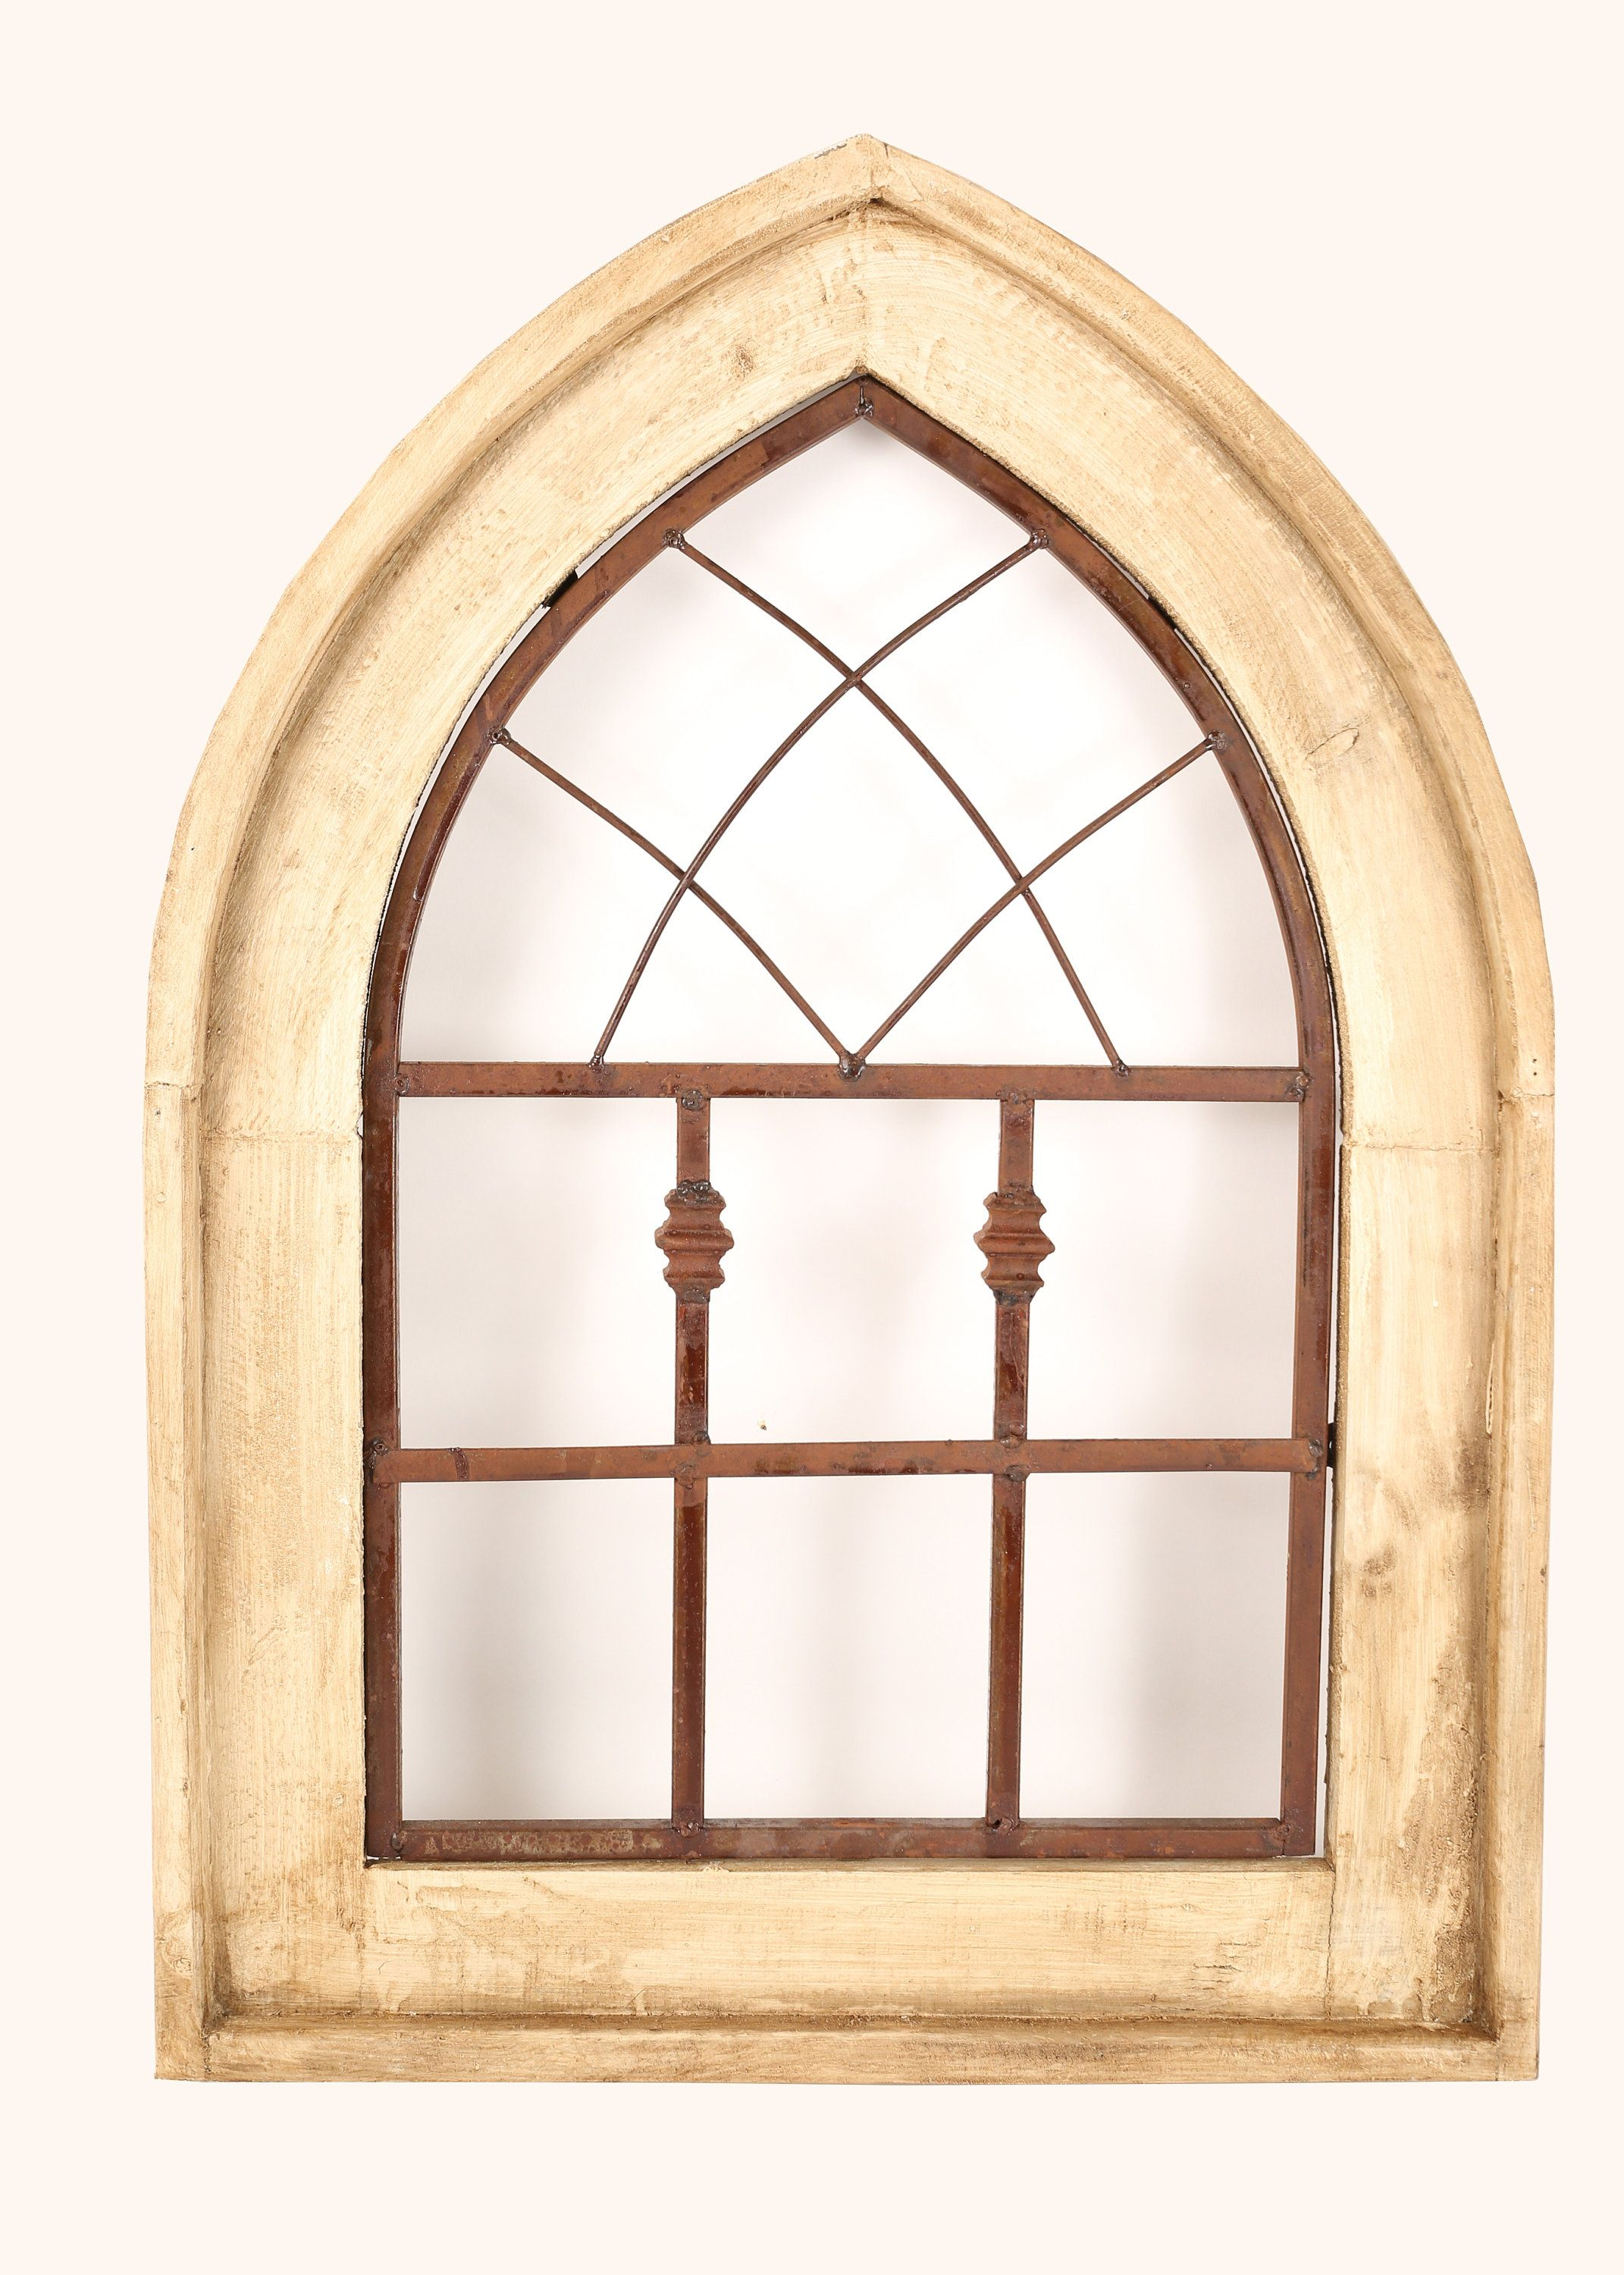 All Saints Gothic Architectural Window Wall Primitive Rustic Garden Patio 21x28 Distressed Farmhouse White Iron And Wood Window Wall Decor Rustic Wood Floors Decor